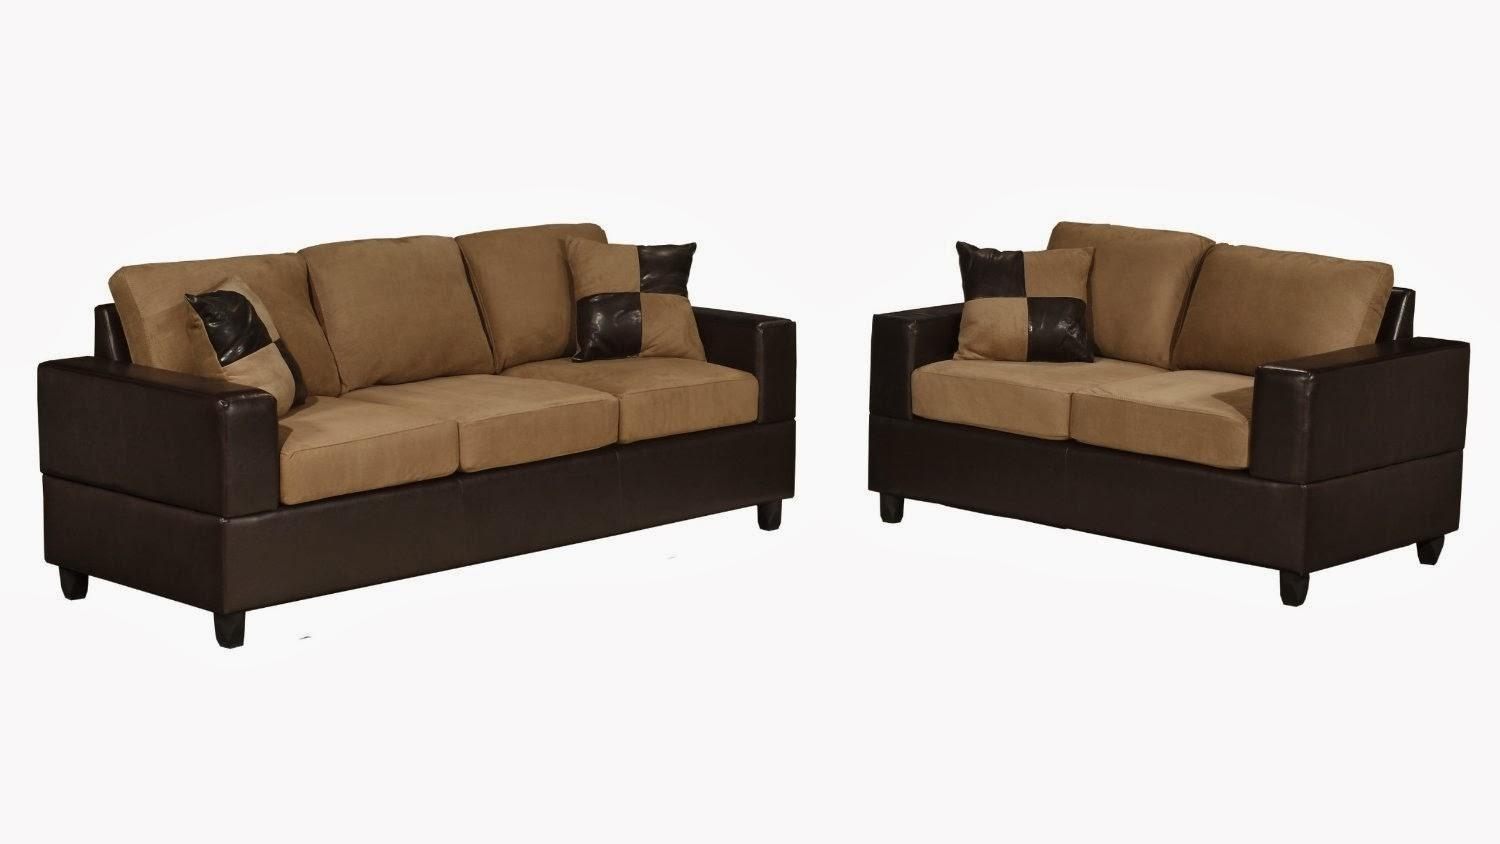 Tiny Sectional Sofa And Living Room Design Best Small Sectional Pertaining To Tiny Sofas (Image 19 of 20)